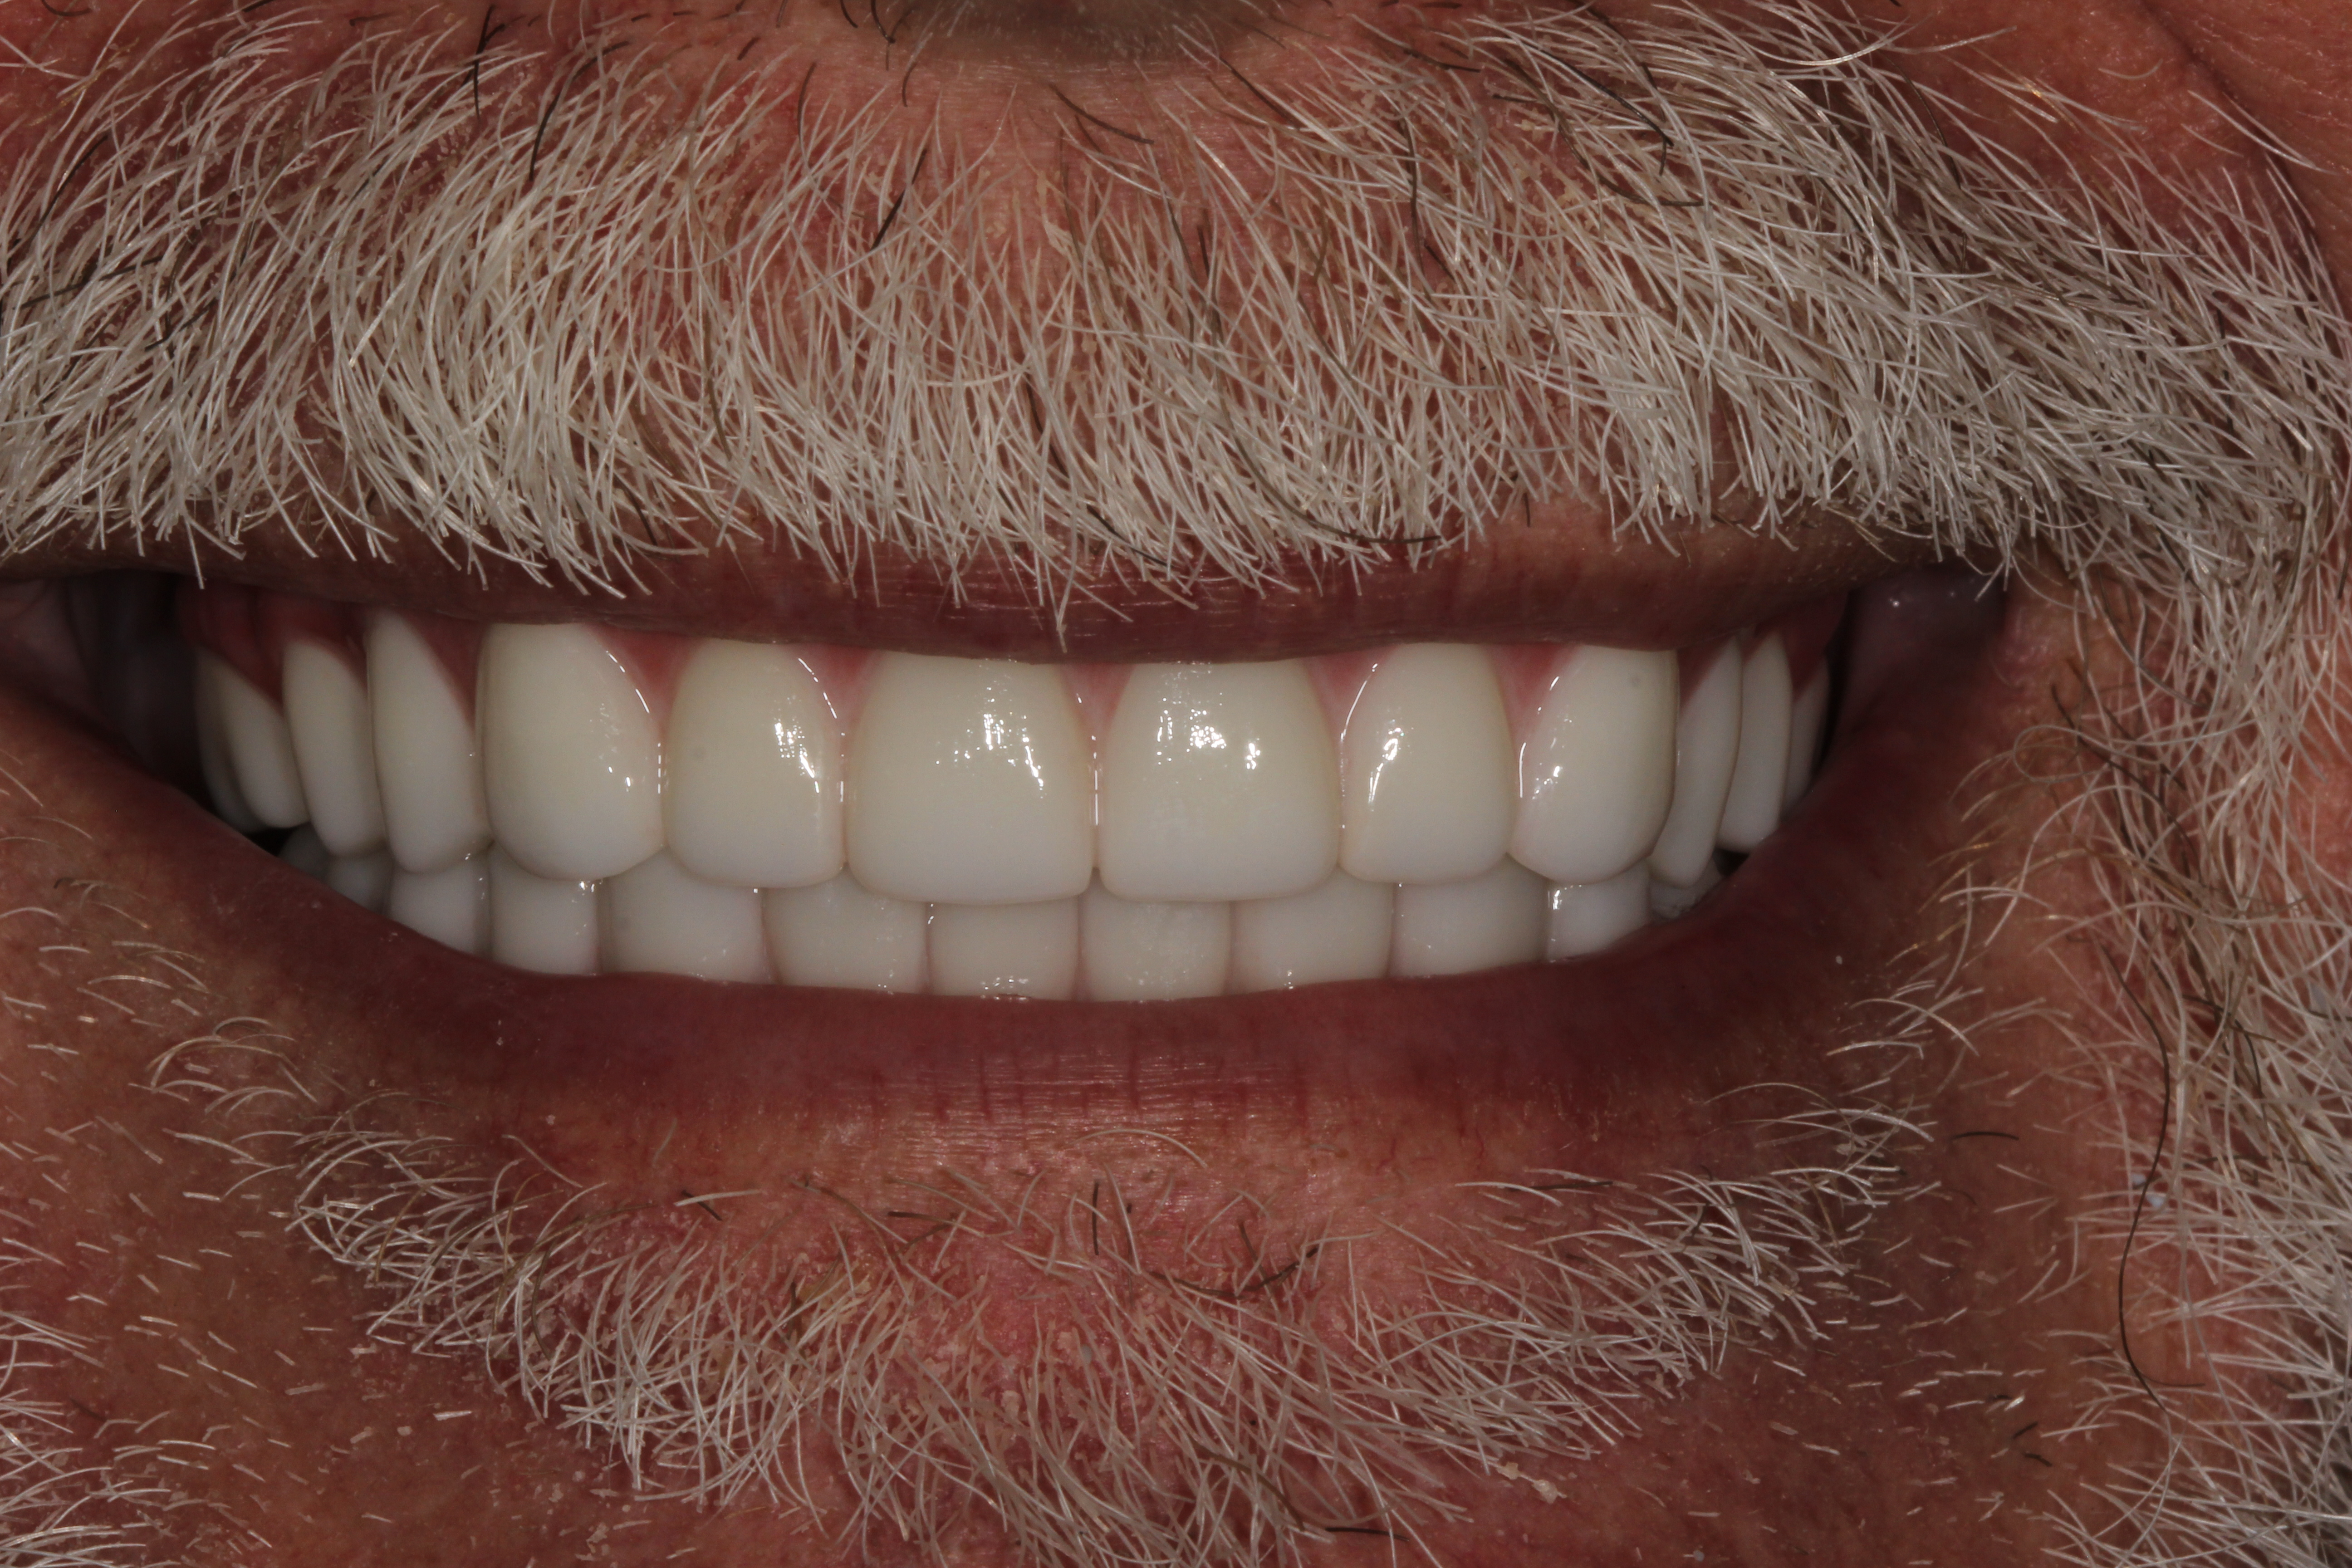 After New Teeth In Just a Day implant dentures from White Wolf Dental in Port Orange, FL